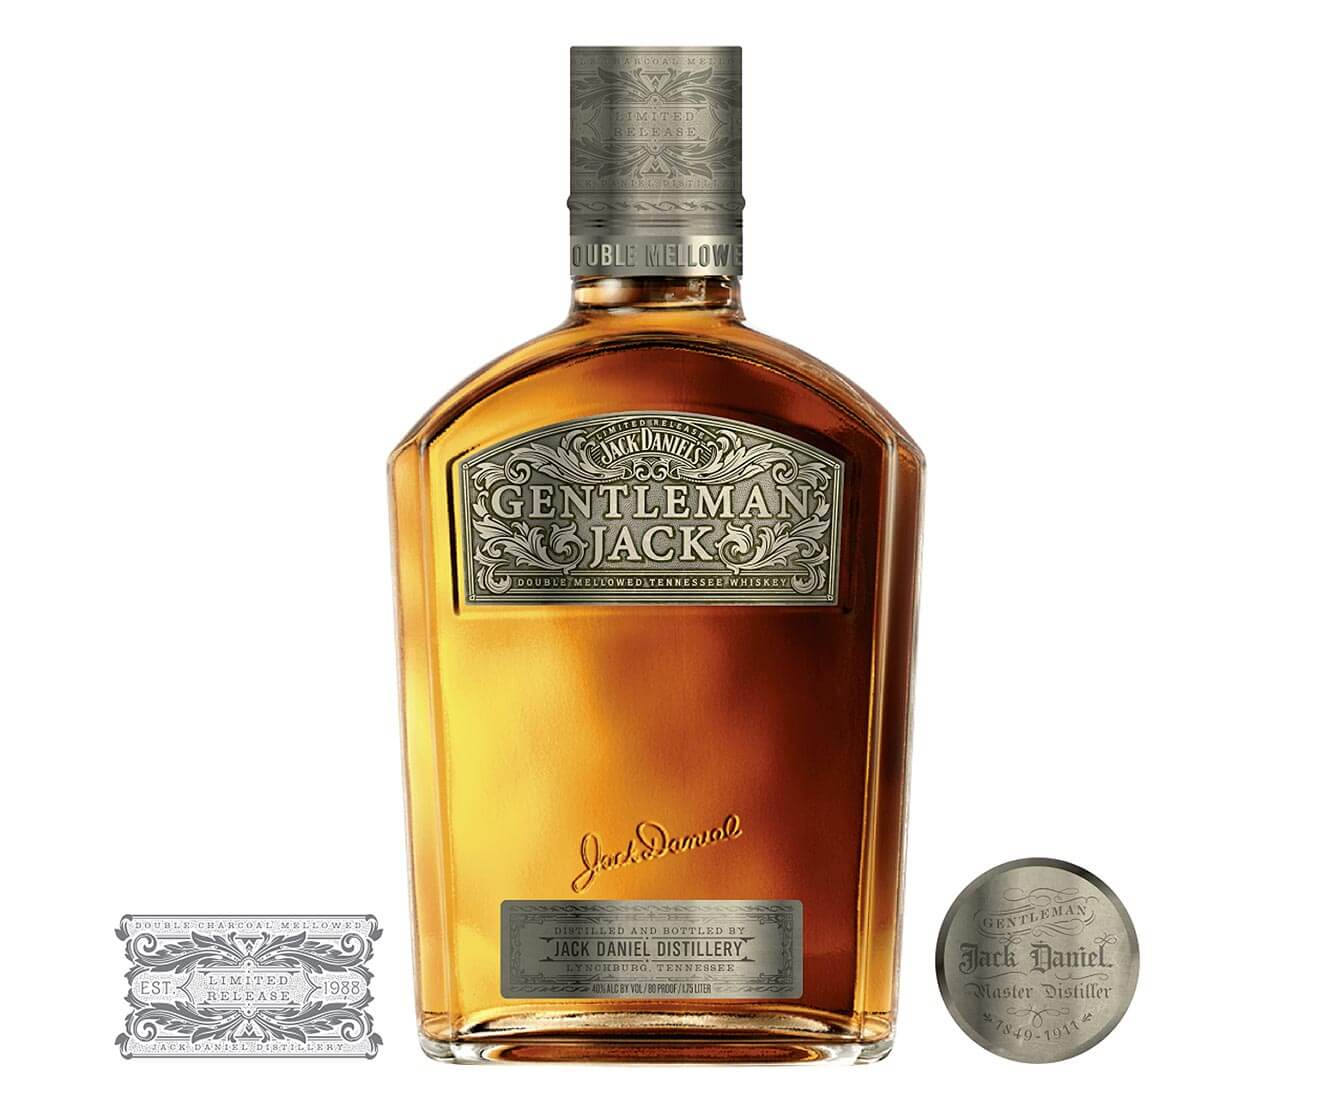 Gentleman Jack Limited Edtion Bottle